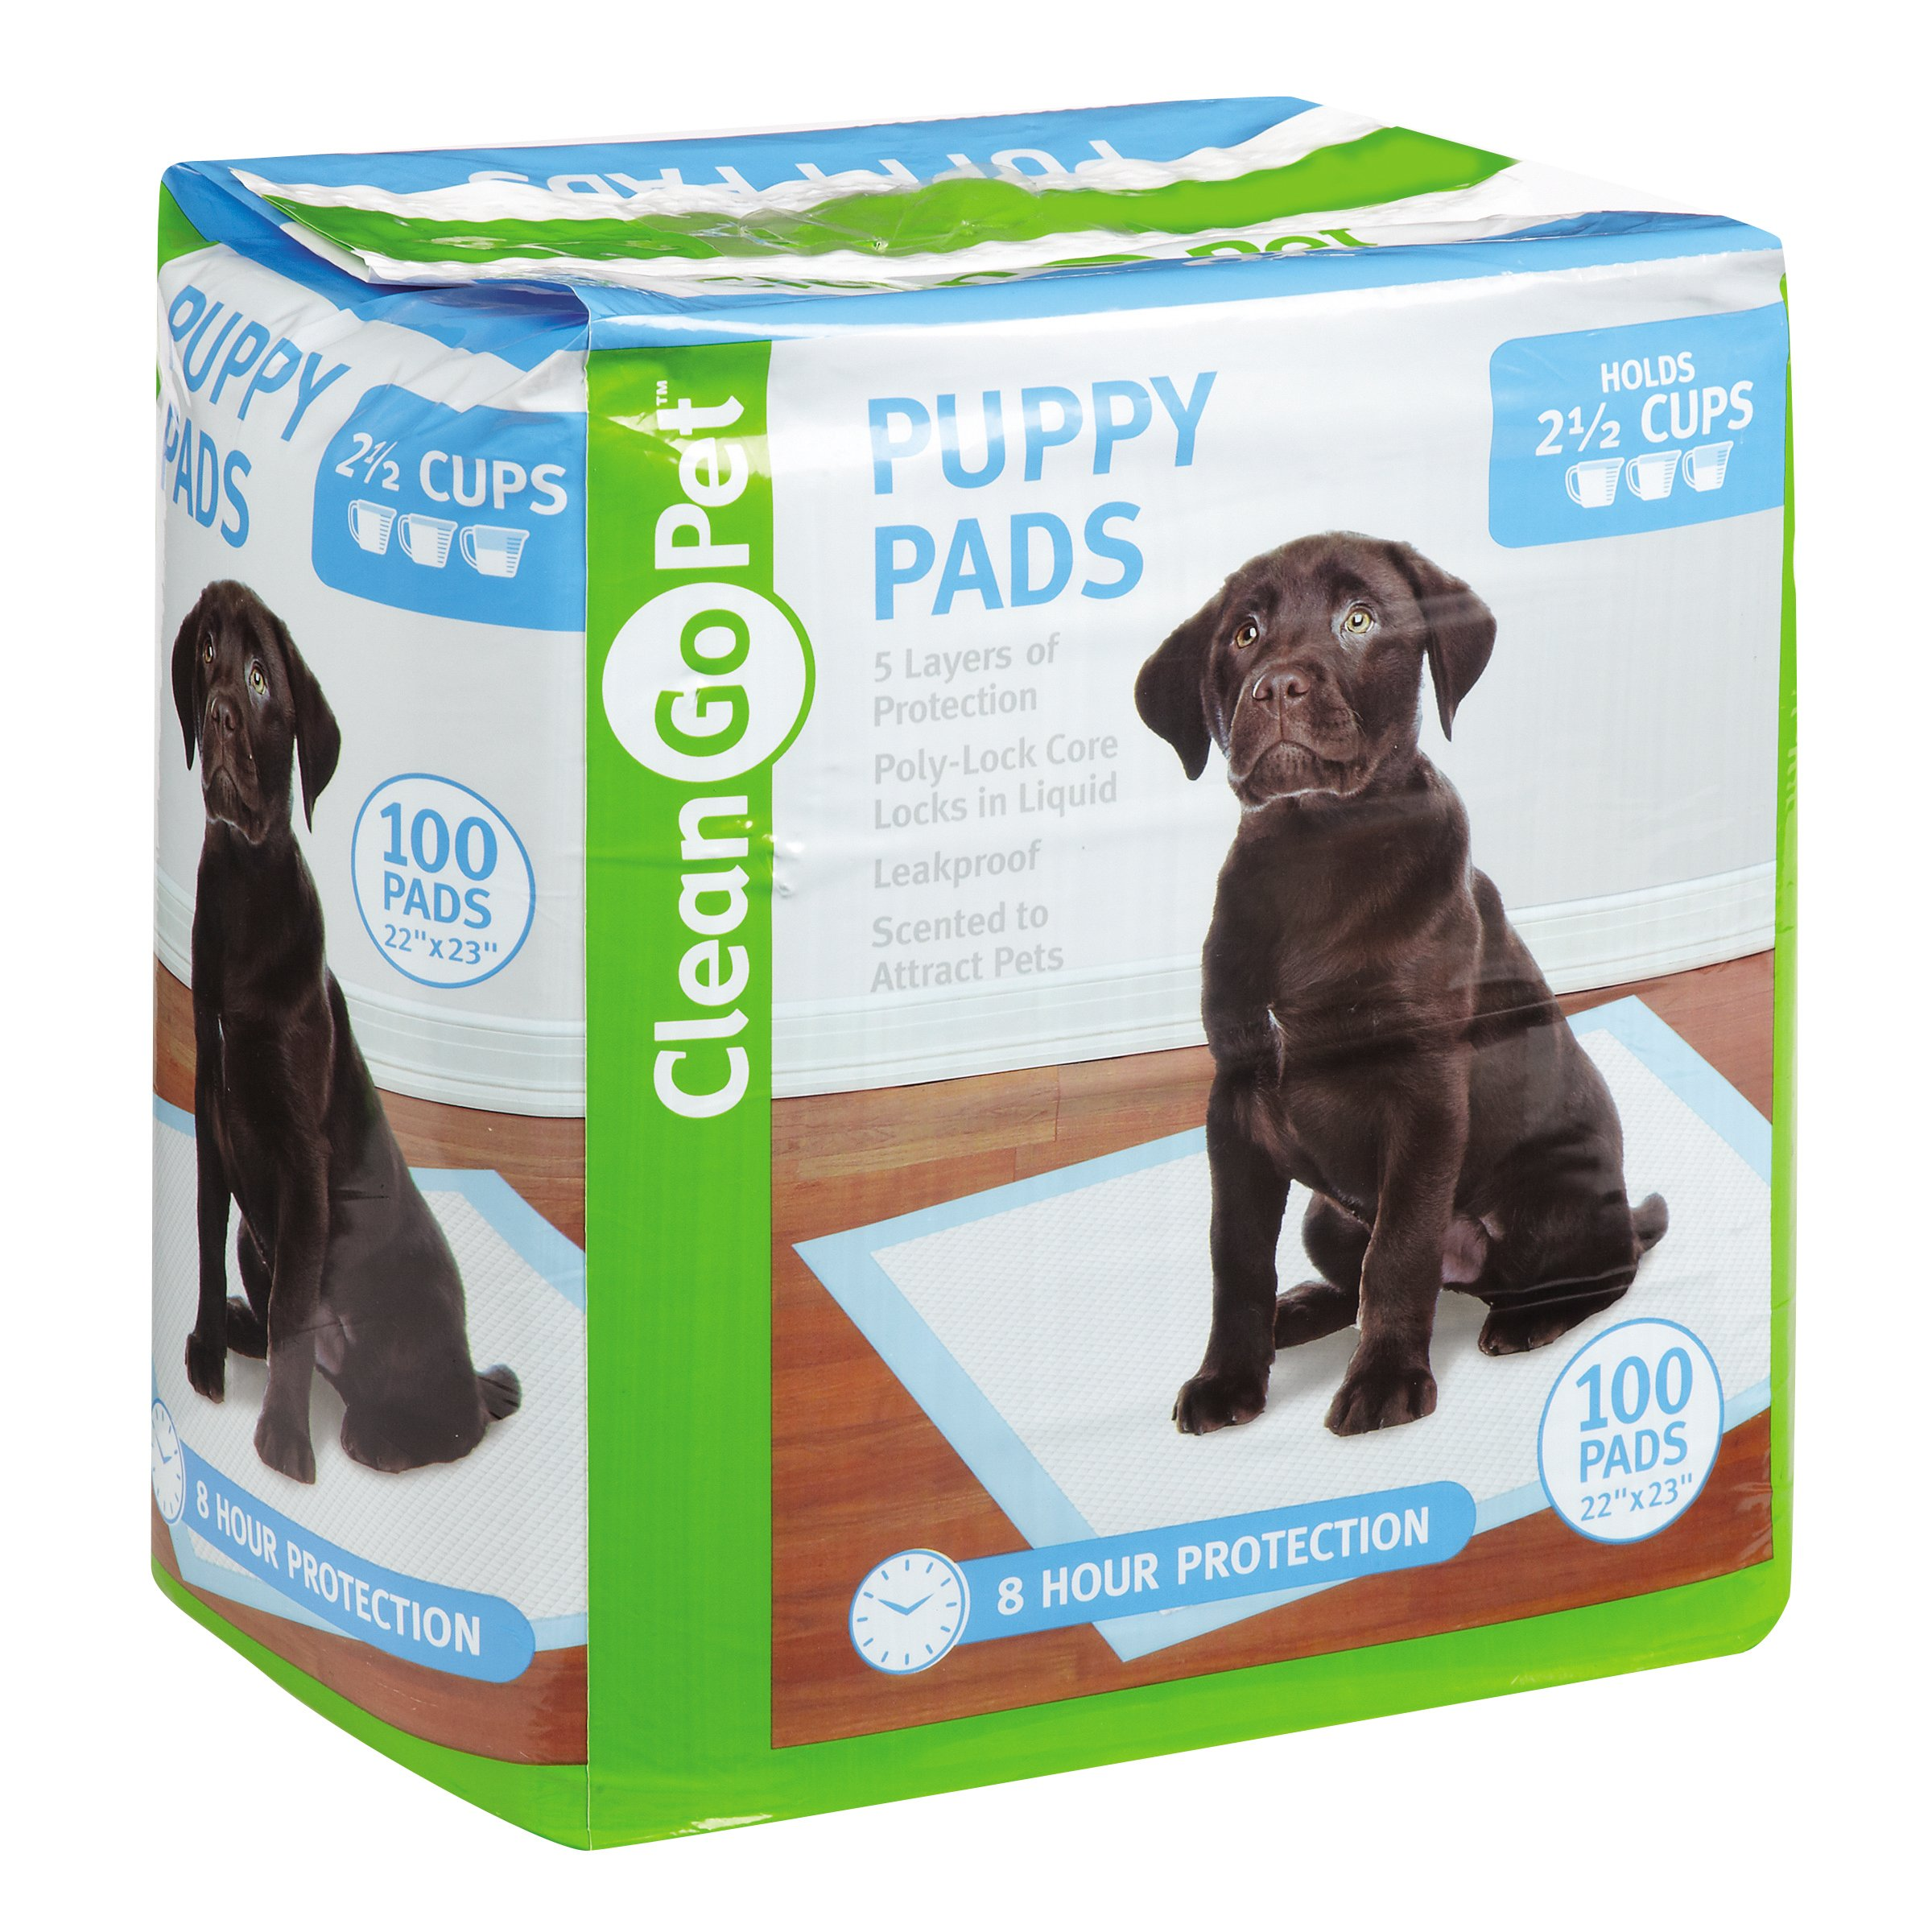 Clean Go Pet Puppy Pads, 100-Pack - Leakproof, Five-Layers, Eight-Hour Protection, Scented to Attract Puppies